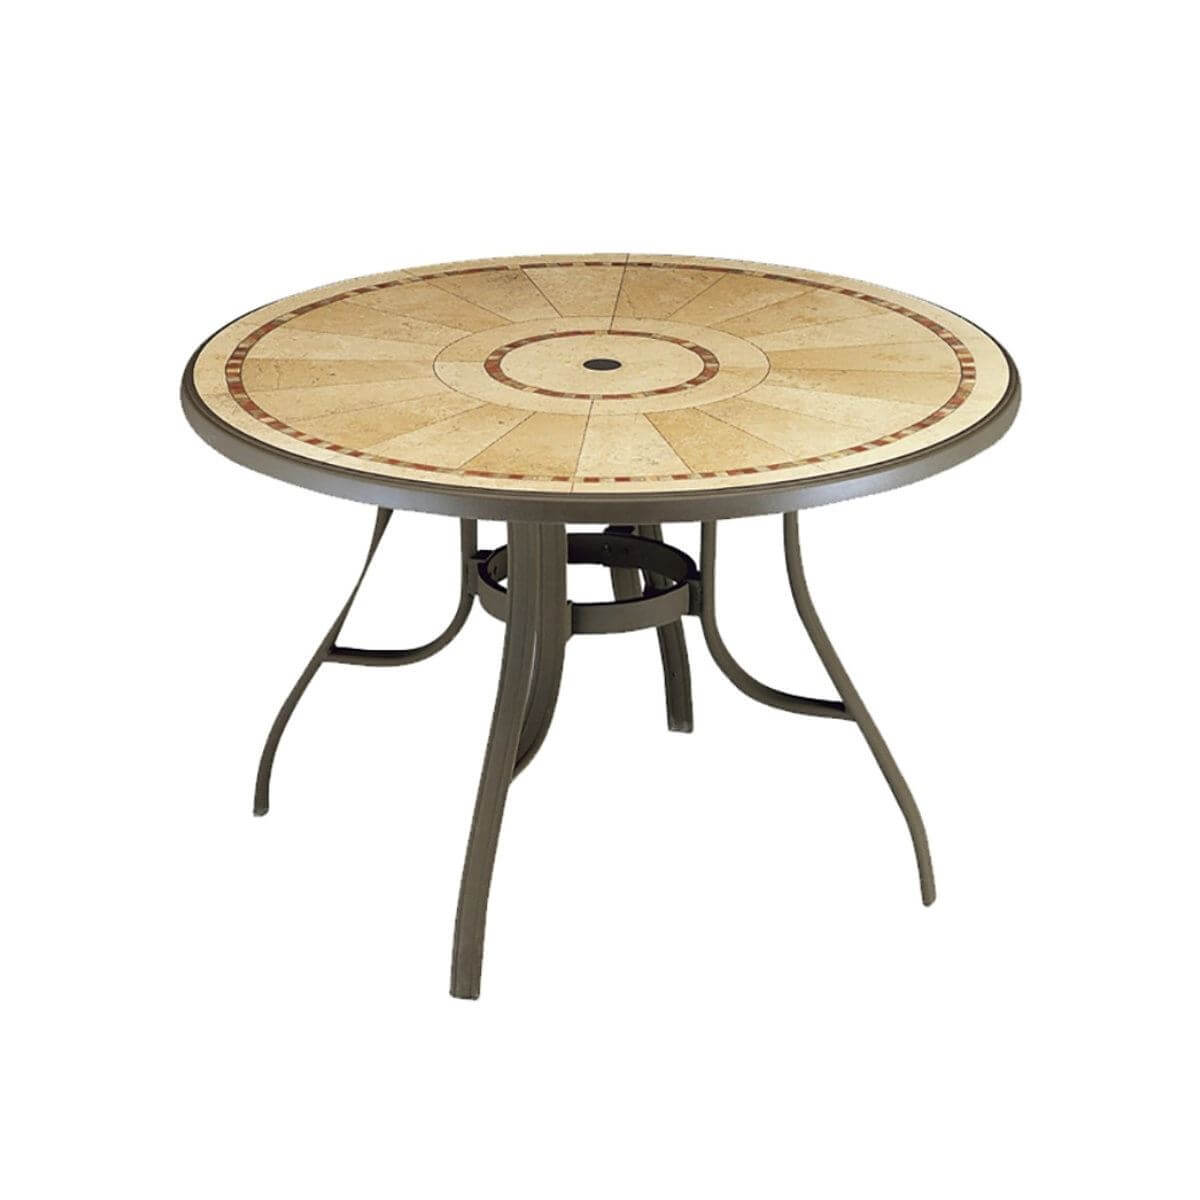 Louisiana 48 Round Table With Metal Legs 44 Lbs